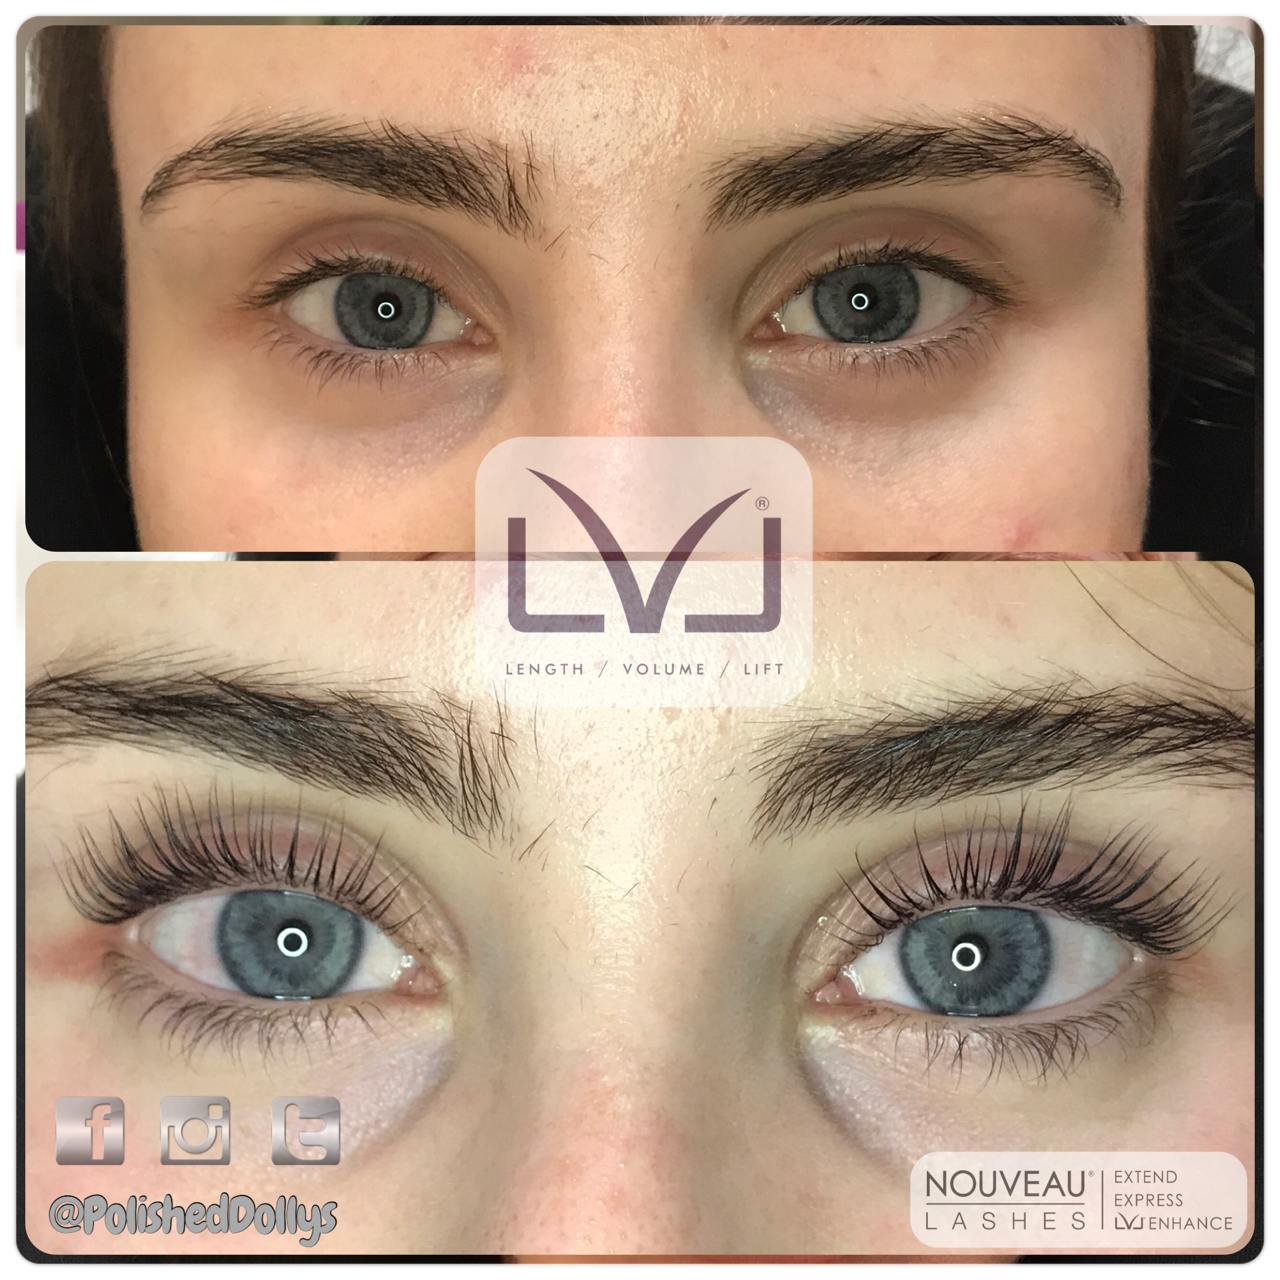 LVL lashes- lash lift and tint